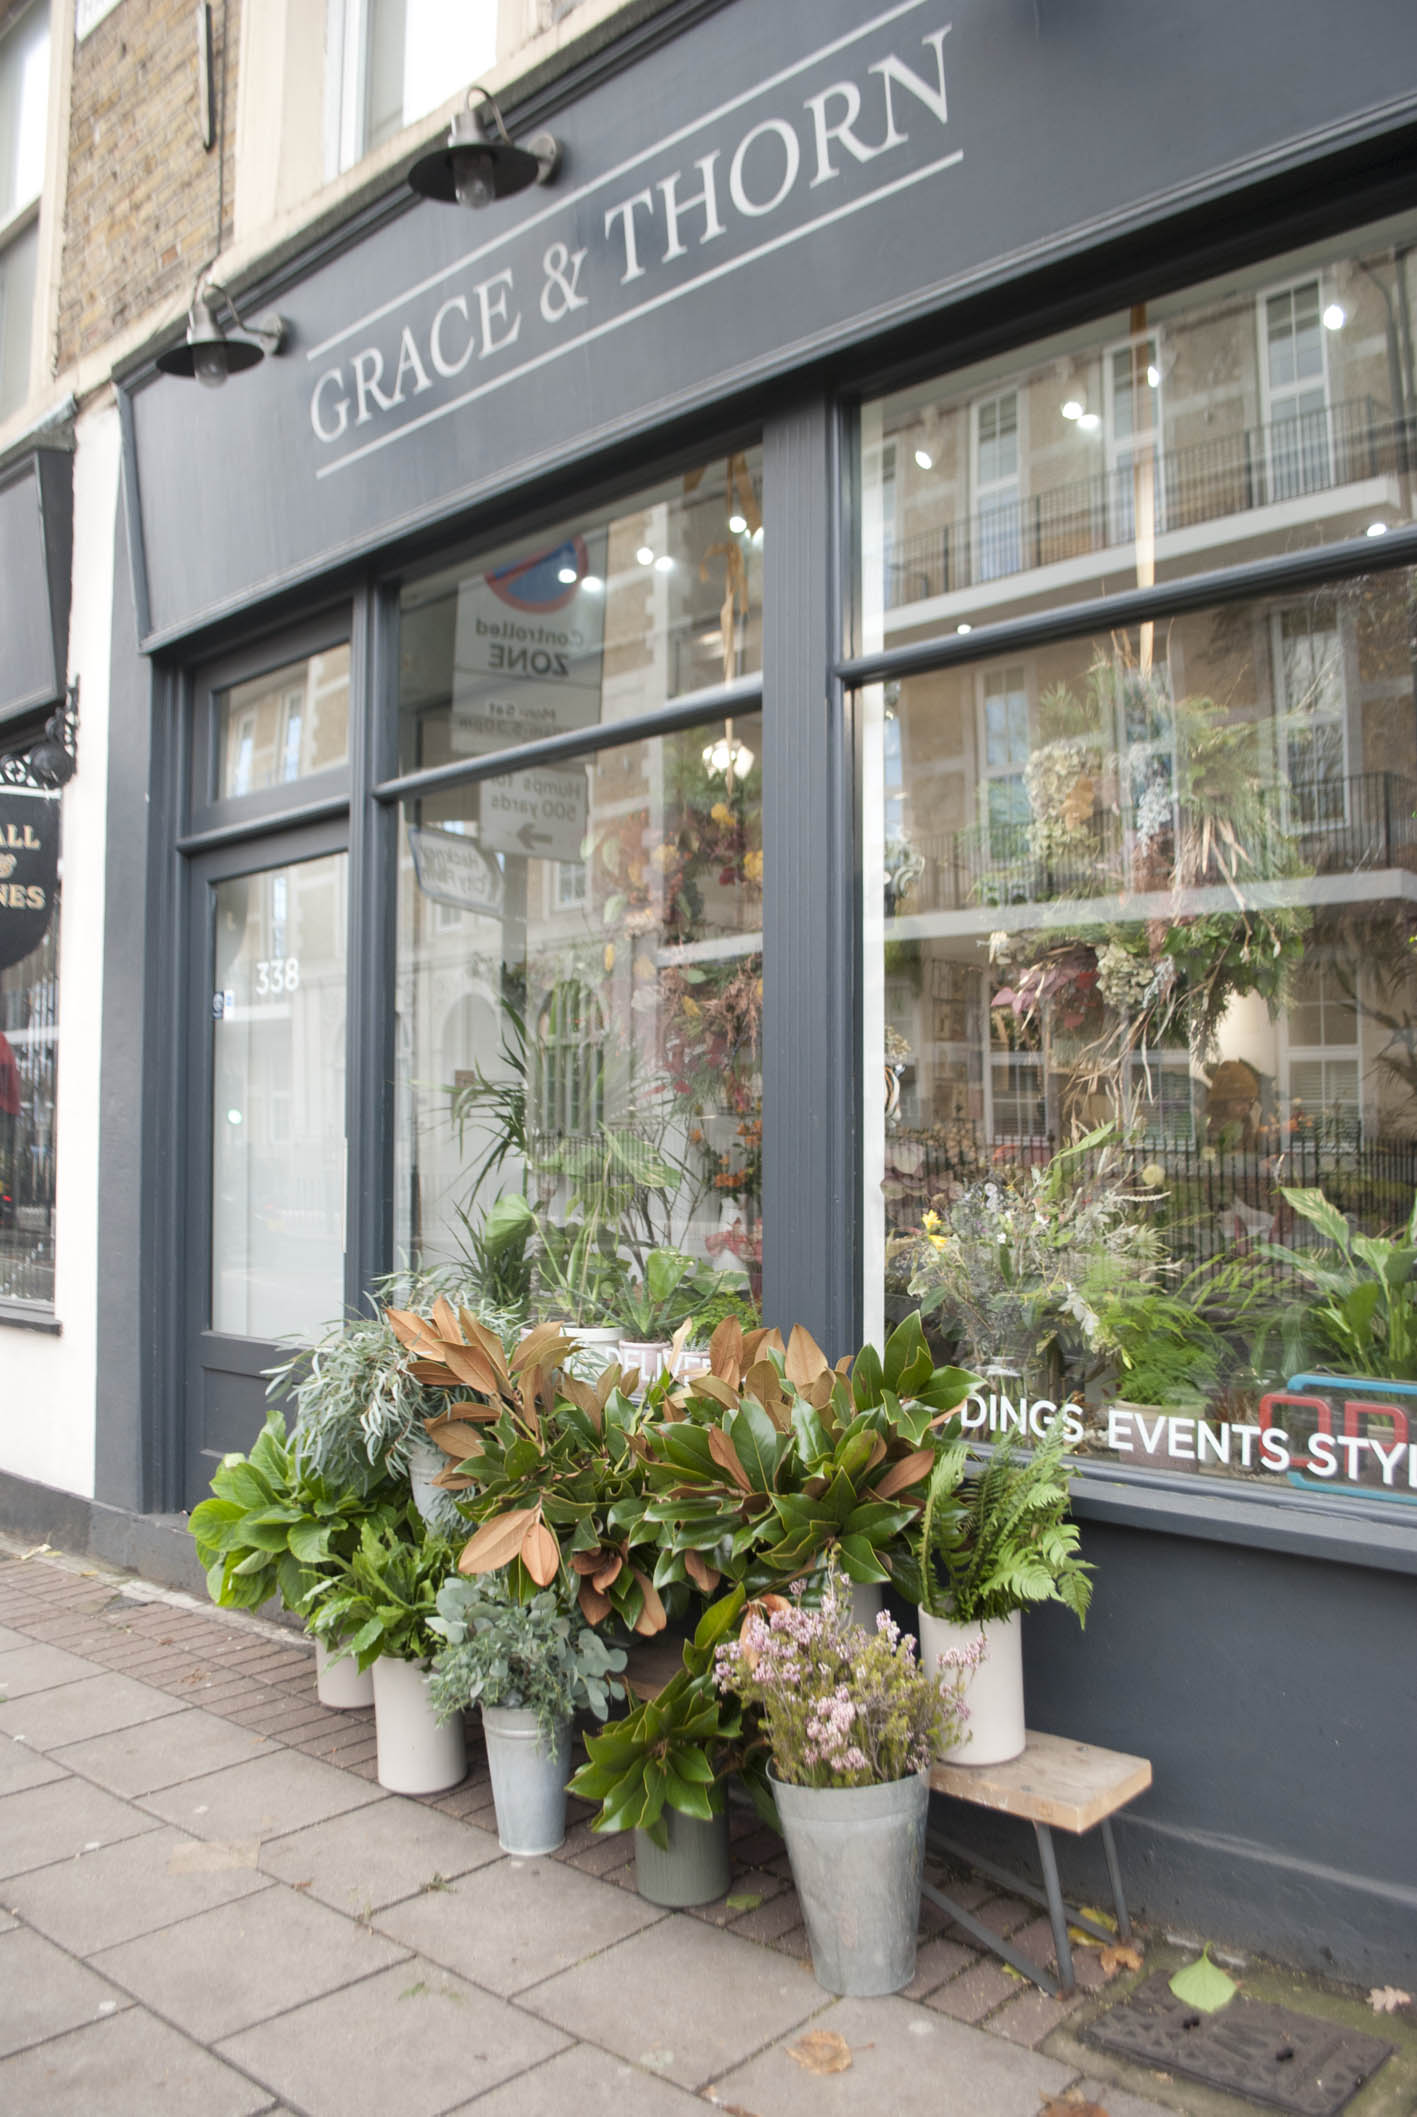 Grace & Thorn's Hackney Shop